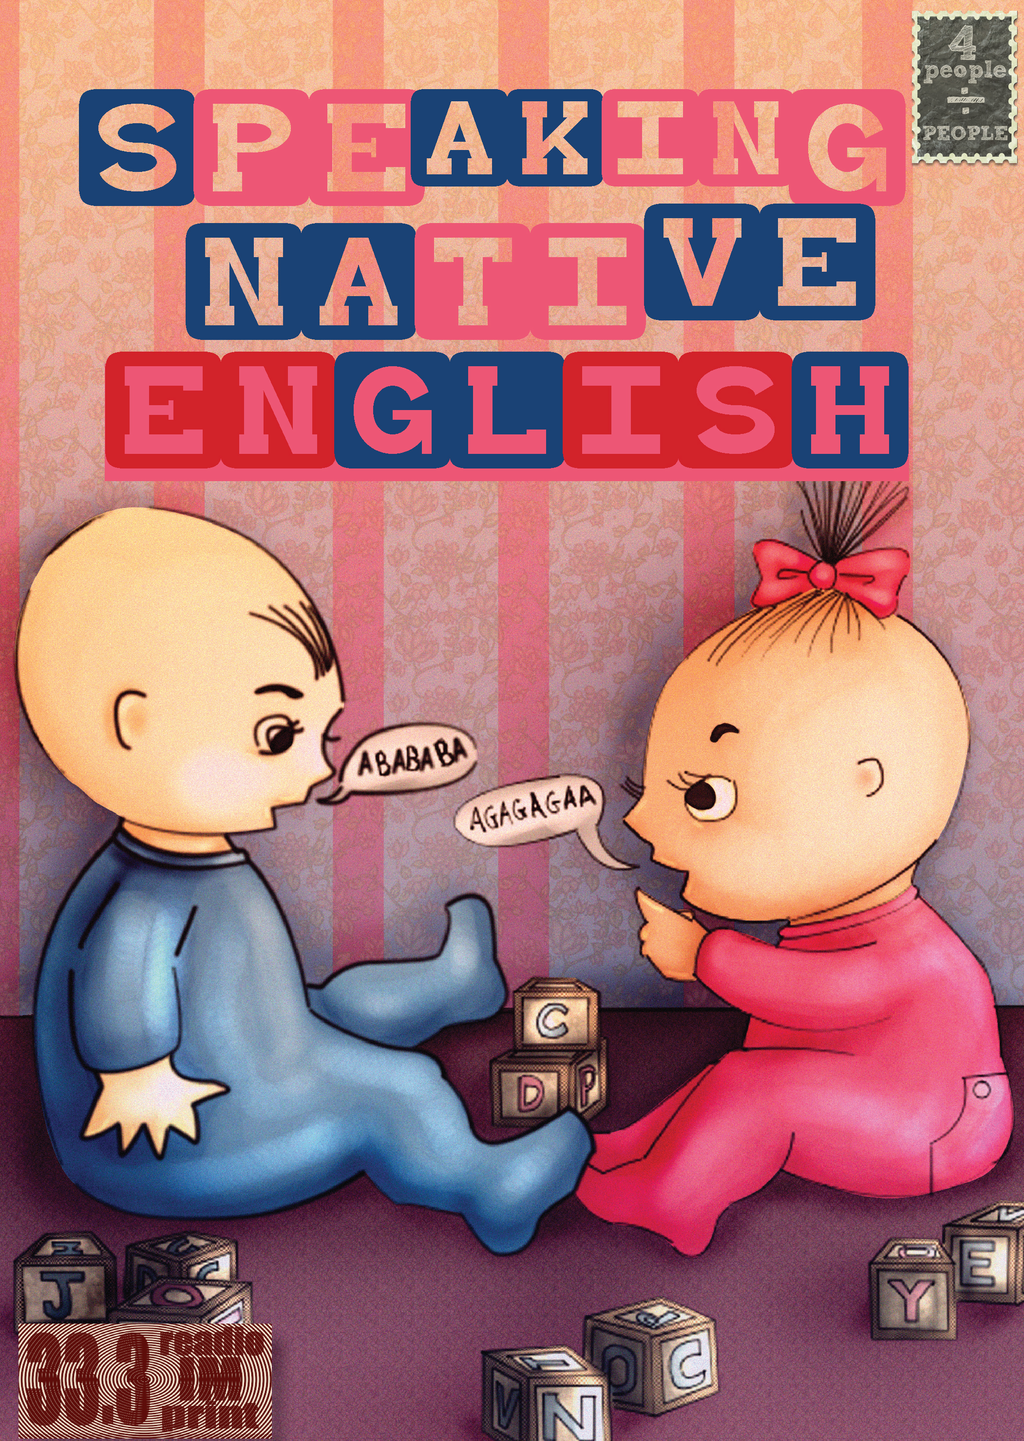 Speaking Native English: Speaking Native English